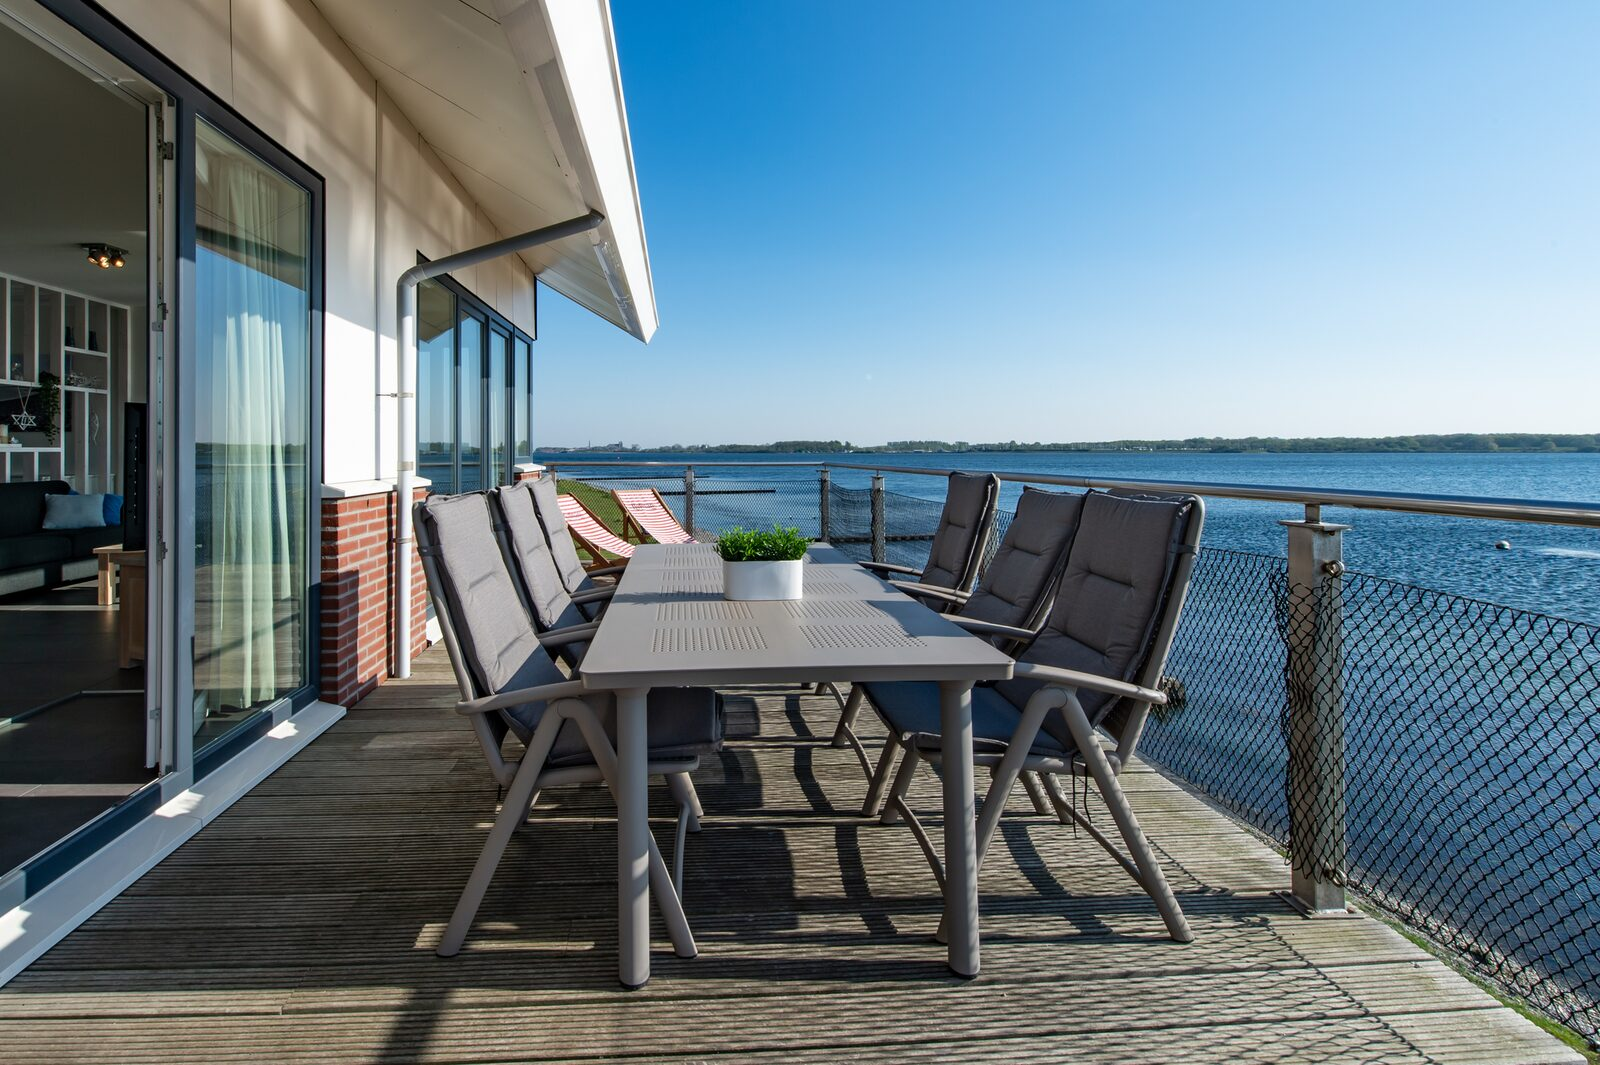 Penthouse 4a | Schotsman watersport